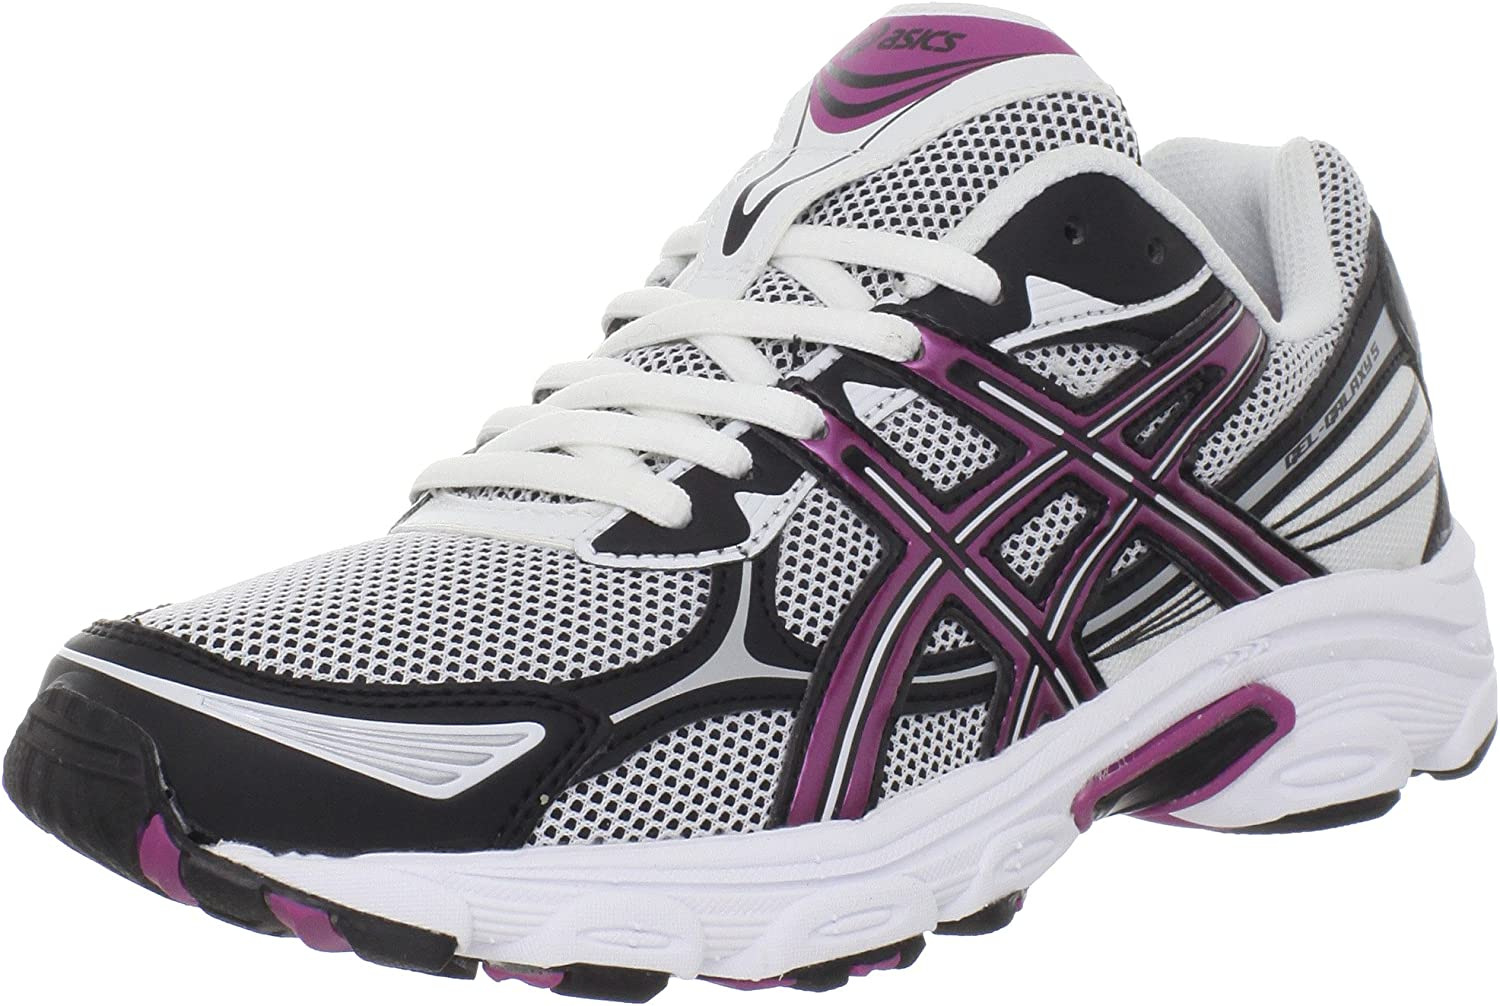 Asics Gel-Galaxy 5 - Zapatillas de Running de sintético para Mujer White/Berry/Black, Color, Talla 41: Amazon.es: Zapatos y complementos